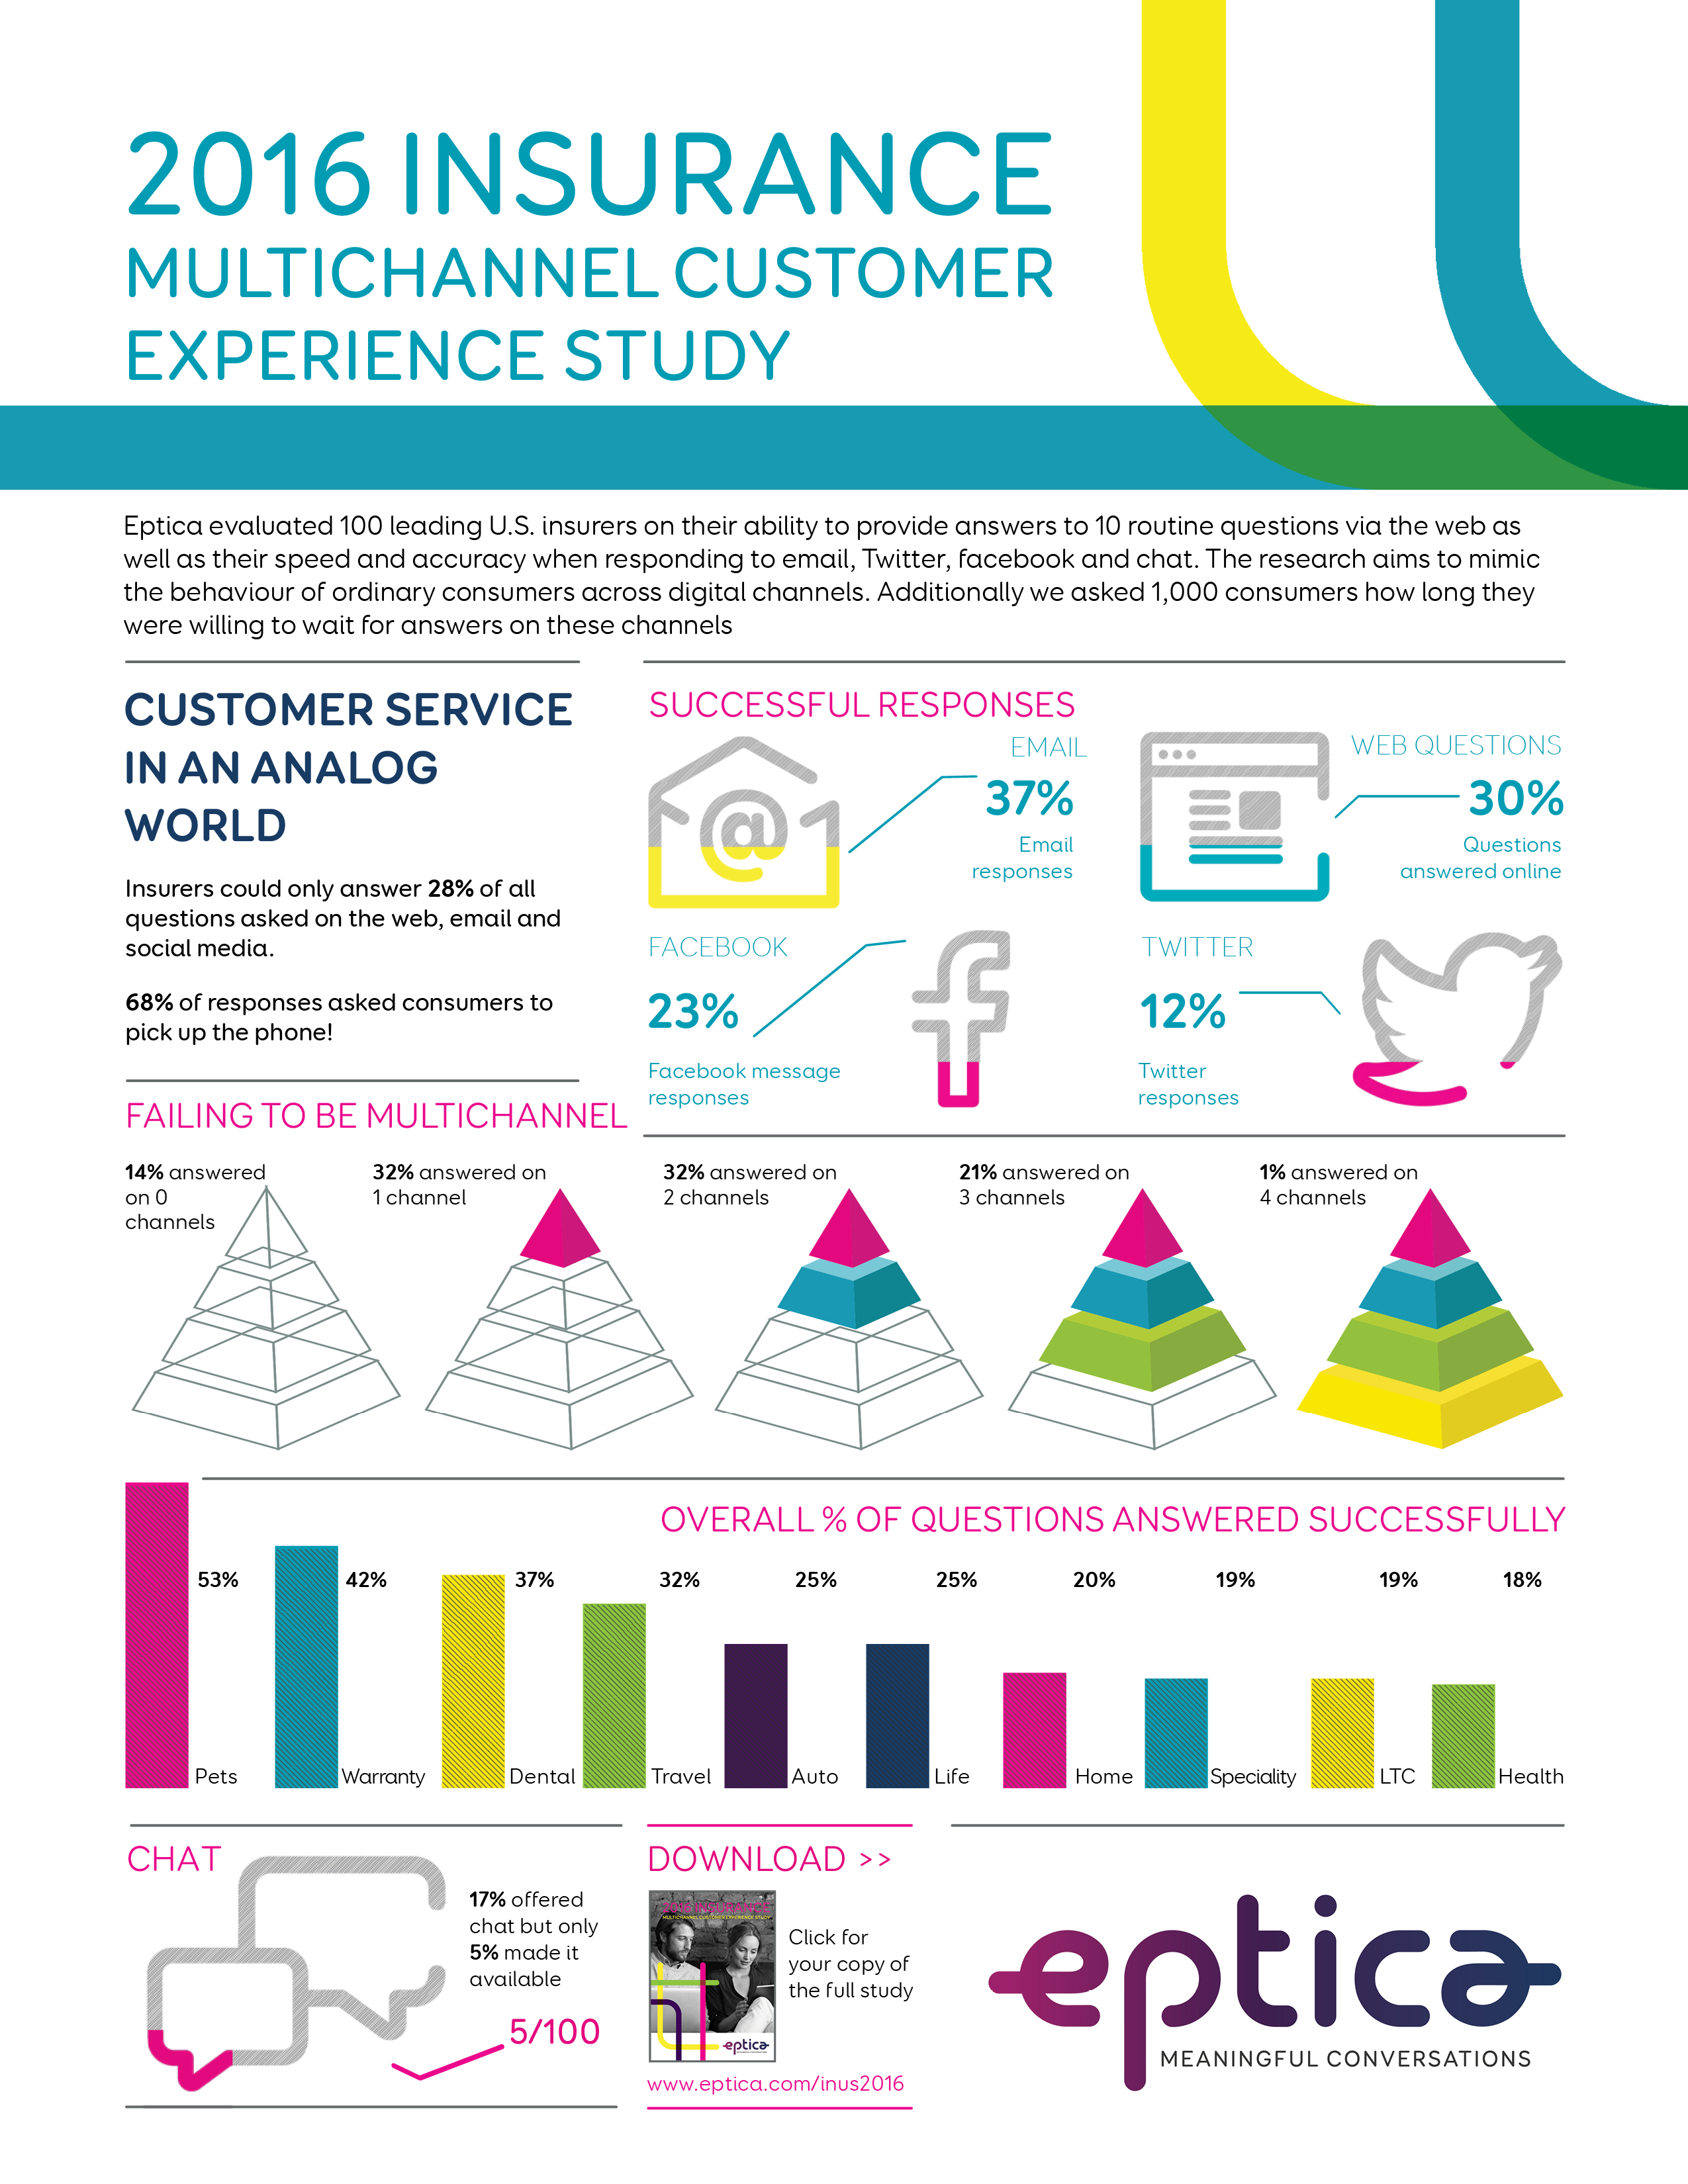 2016 Eptica Insurance Multichannel Customer Experience Study